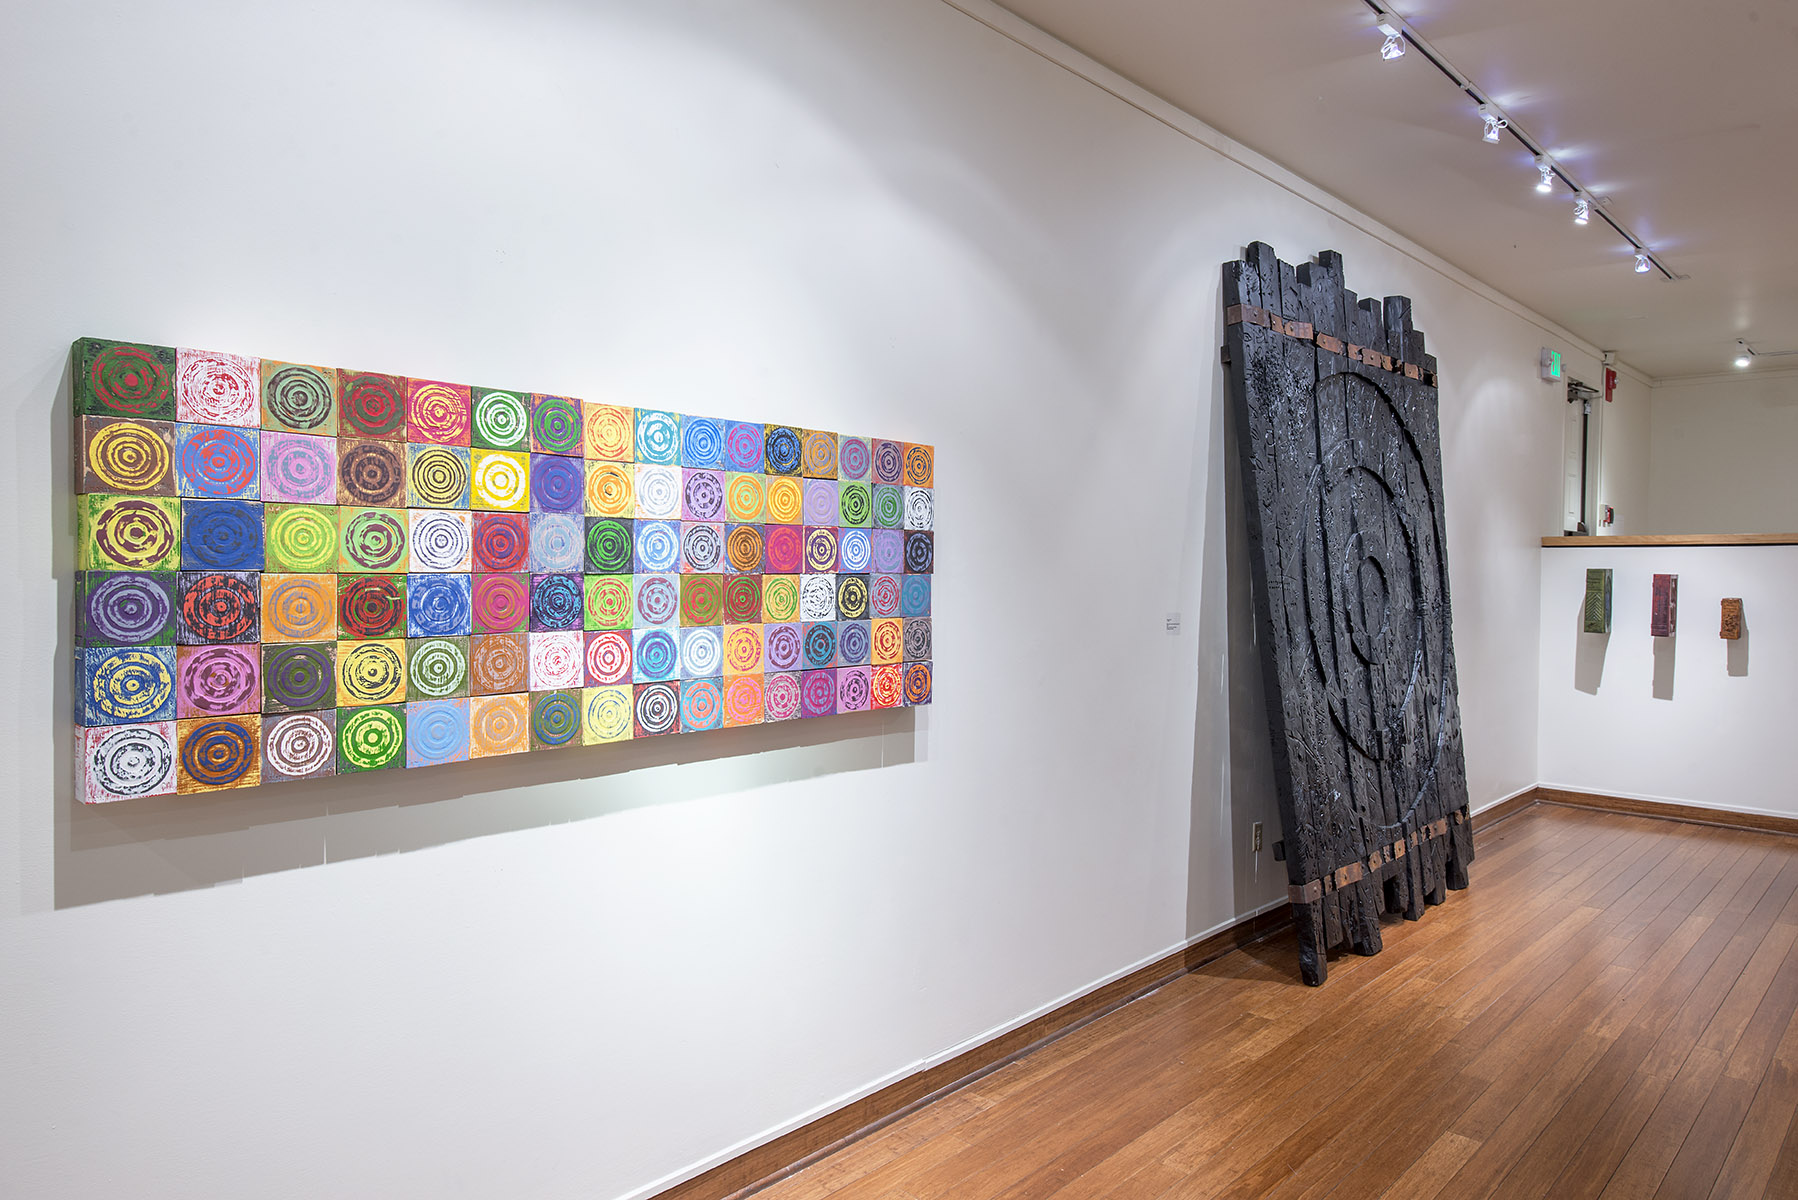 The Prophet's Library Vol. II - Solo exhibition of works by Wesley Clark on view in the Carl Van Vechten Gallery (lower level) through March 2019